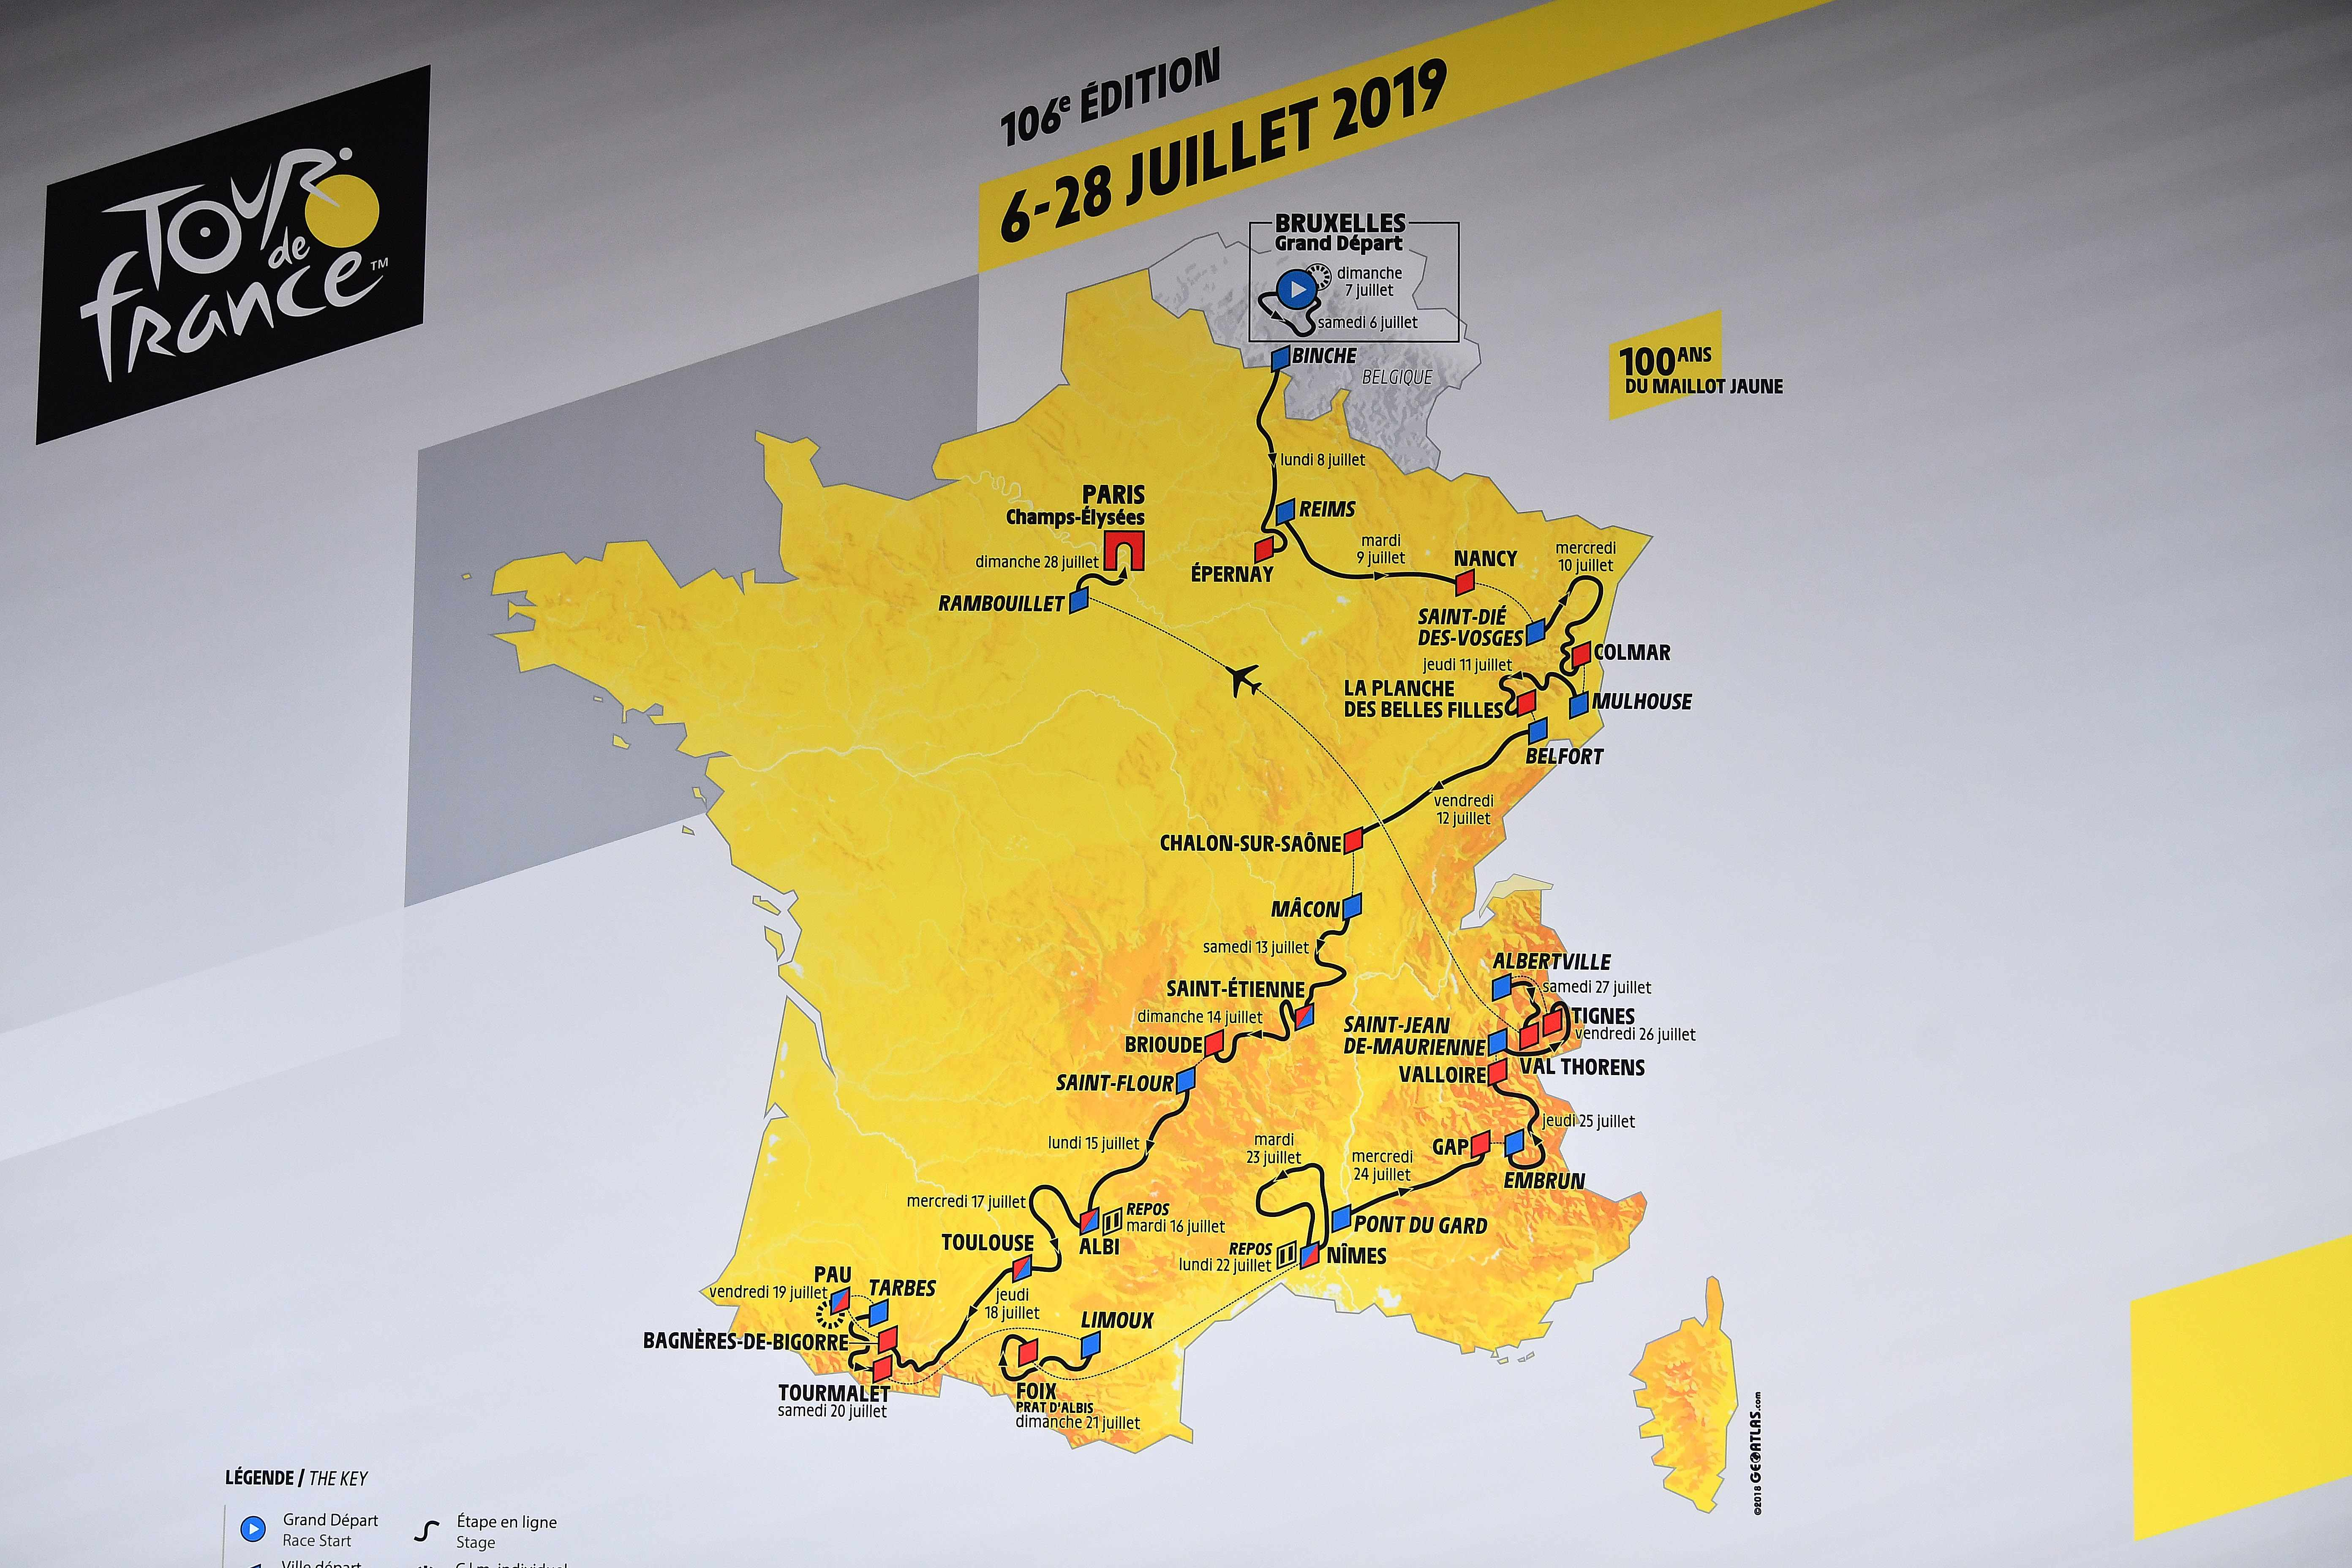 The 2019 Tour de France route map